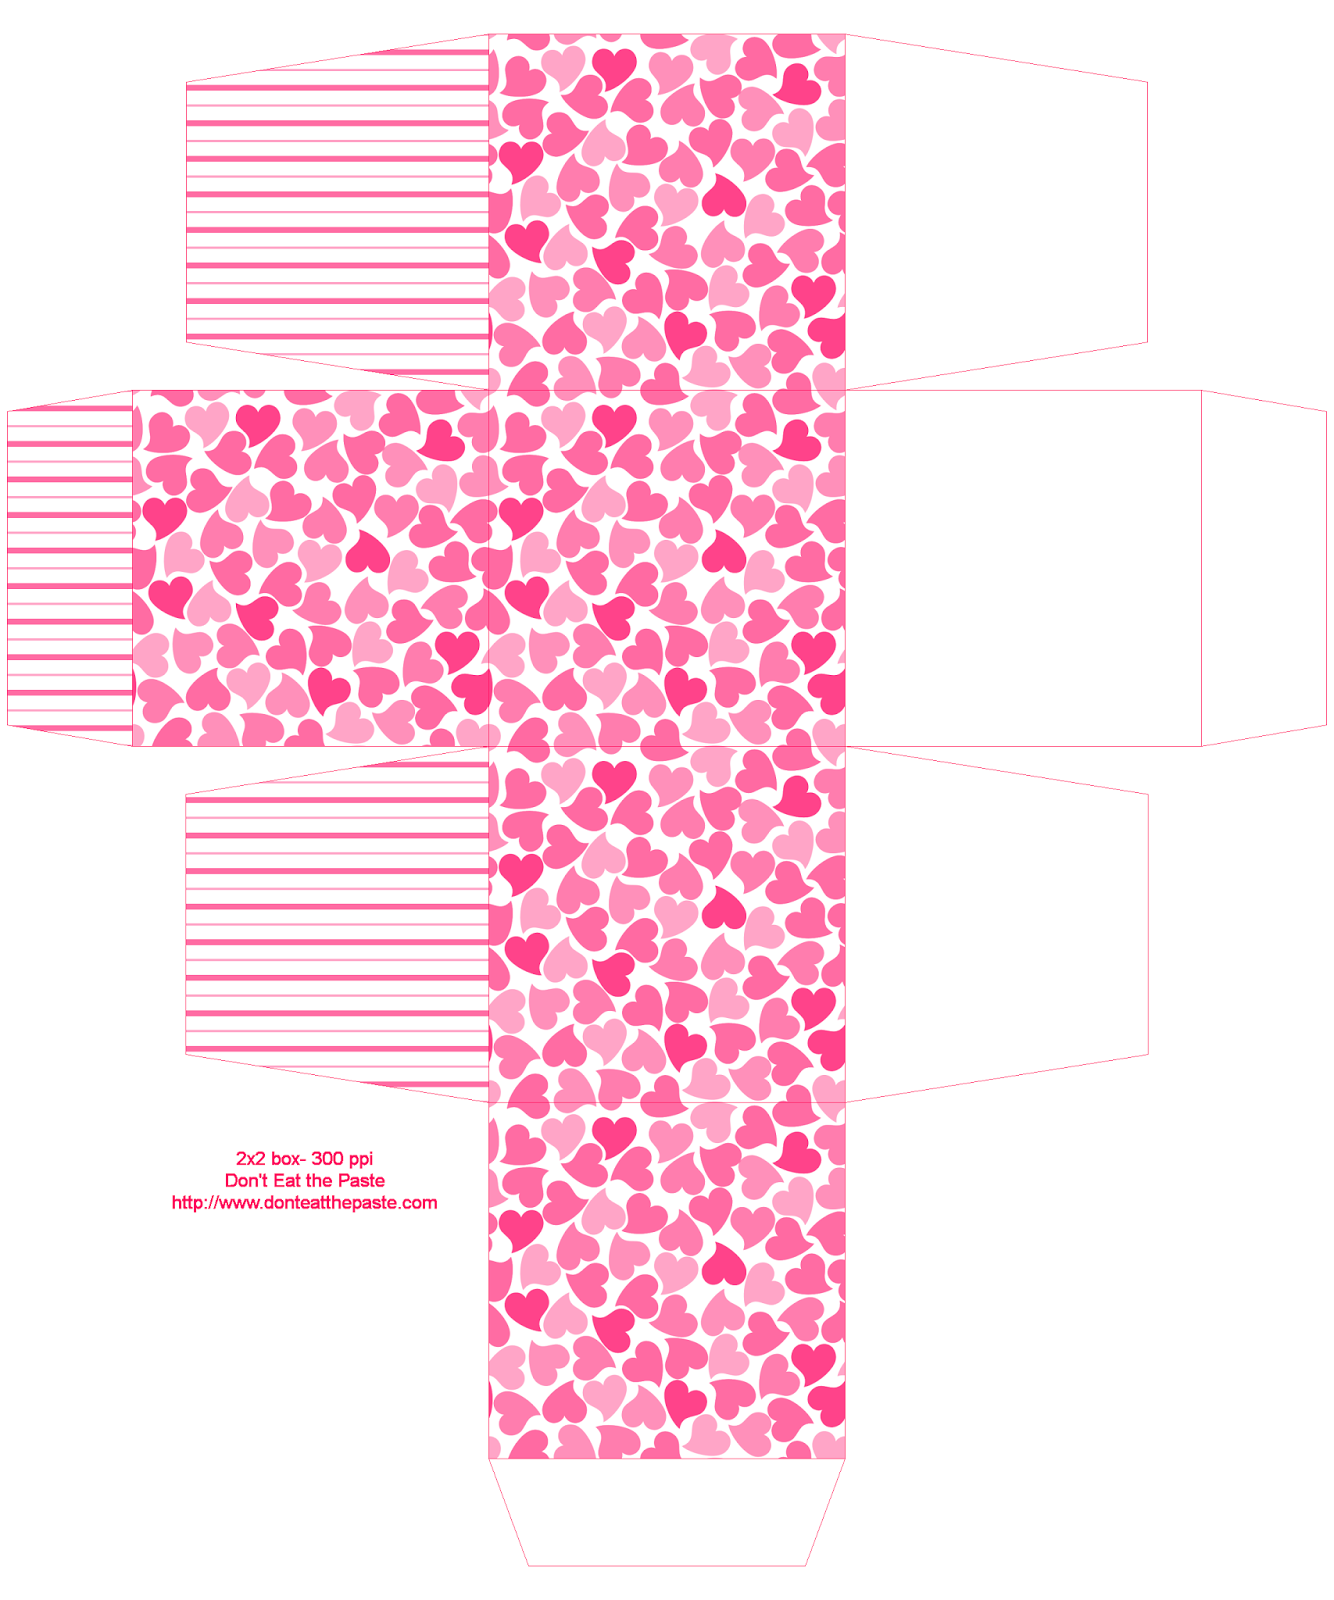 Printable Hearts Boxes